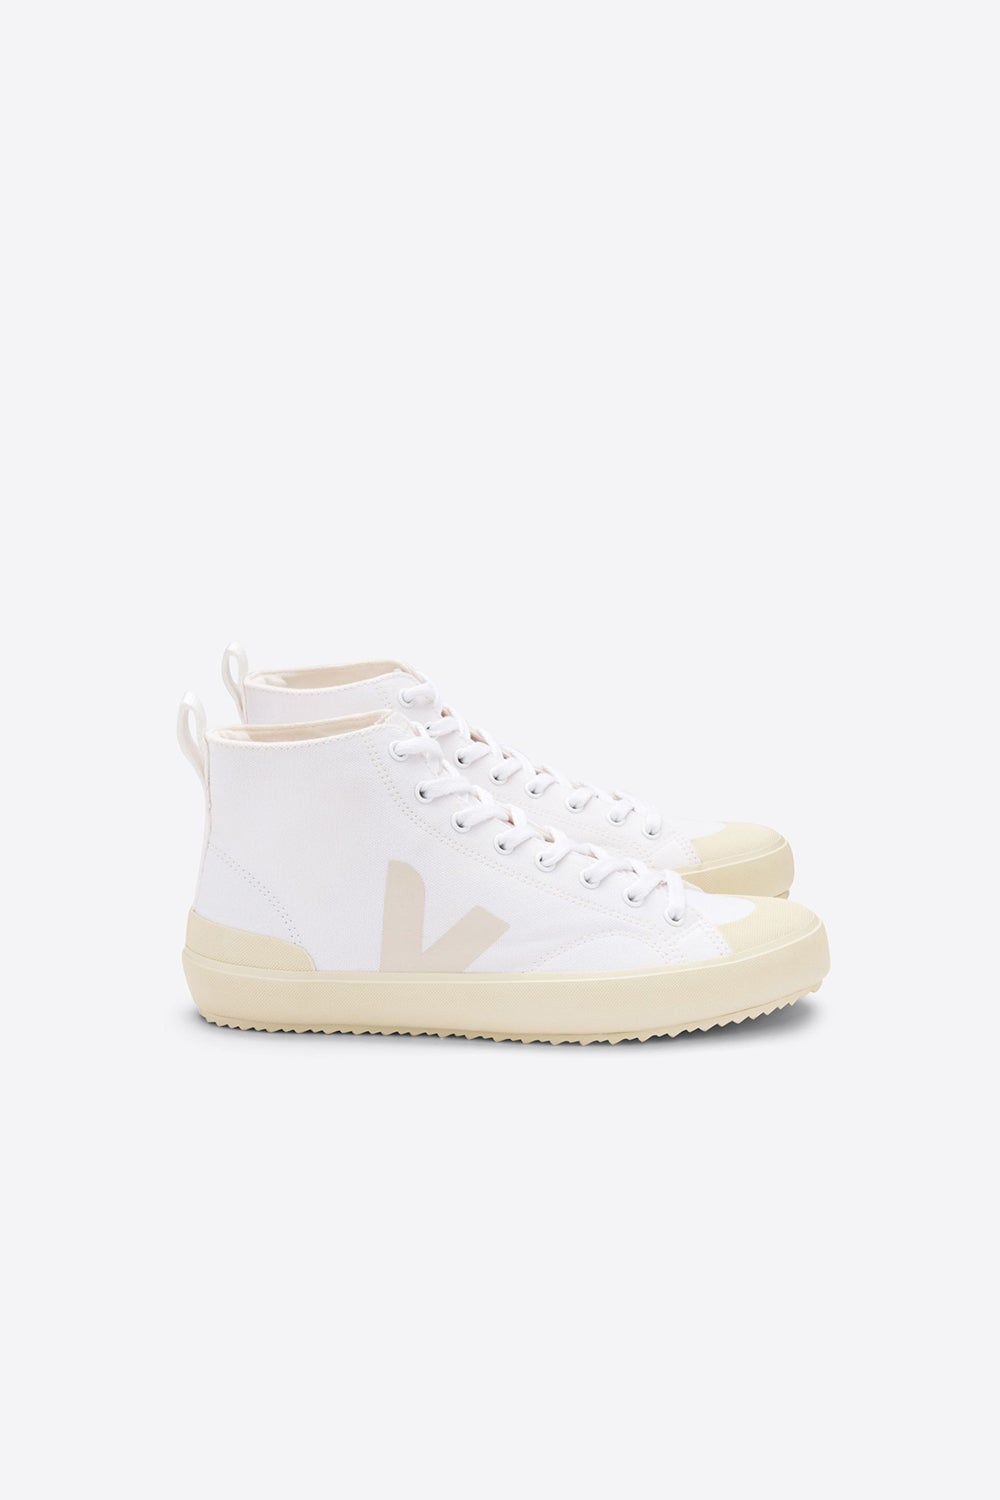 Veja Nova High Top White/Butter Sole